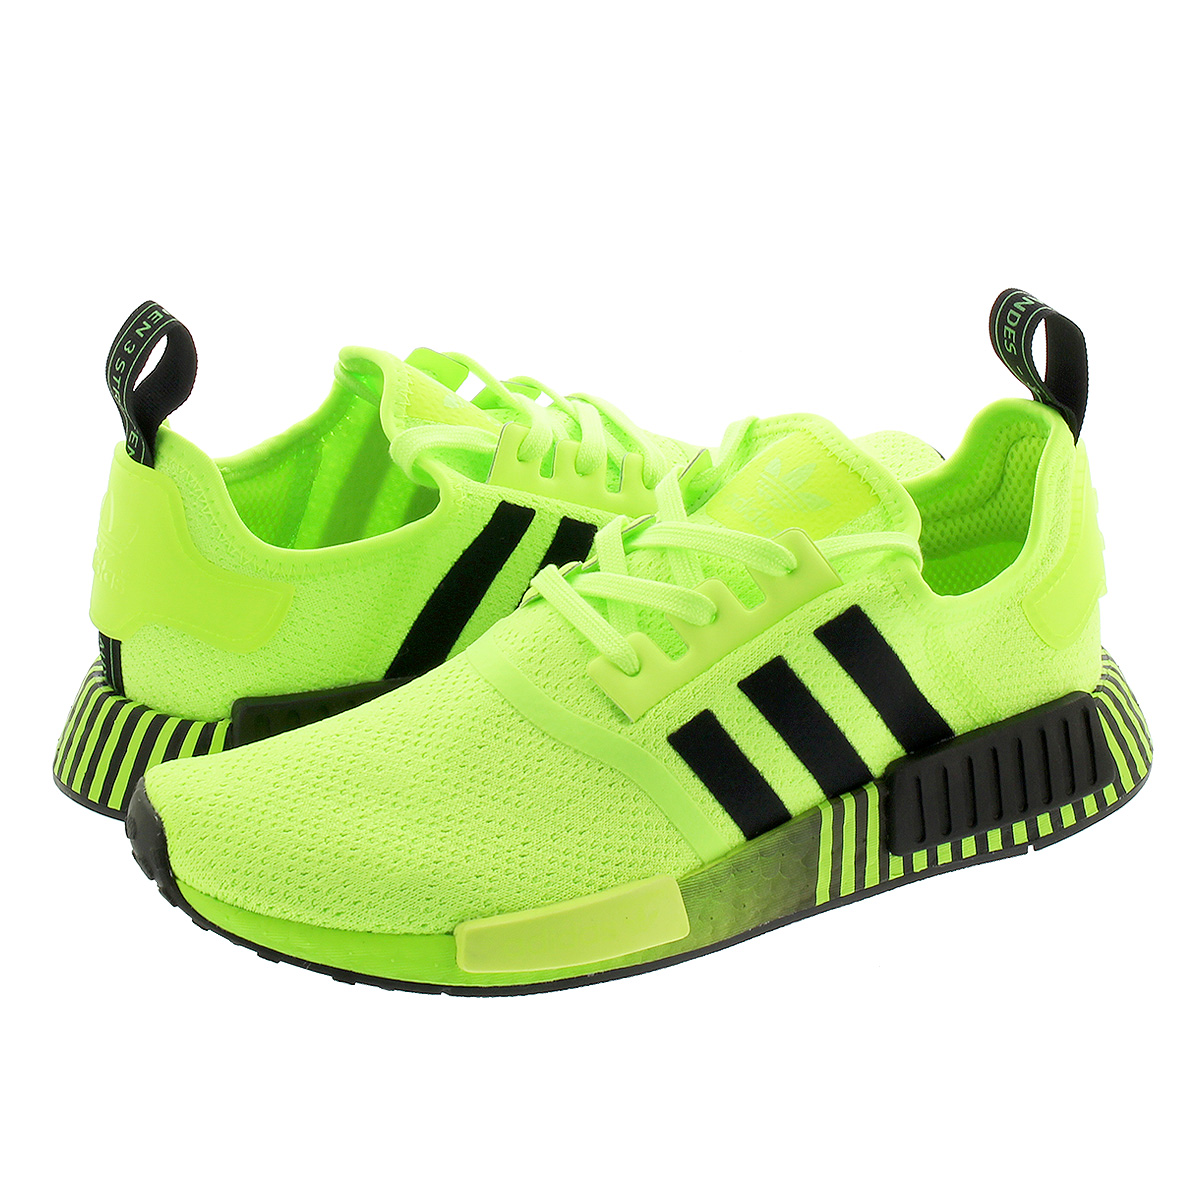 adidas NMD_R1 アディダス エヌエムディー R1 SIGNAL GREEN/CORE BLACK/SIGNAL GREEN fv3647